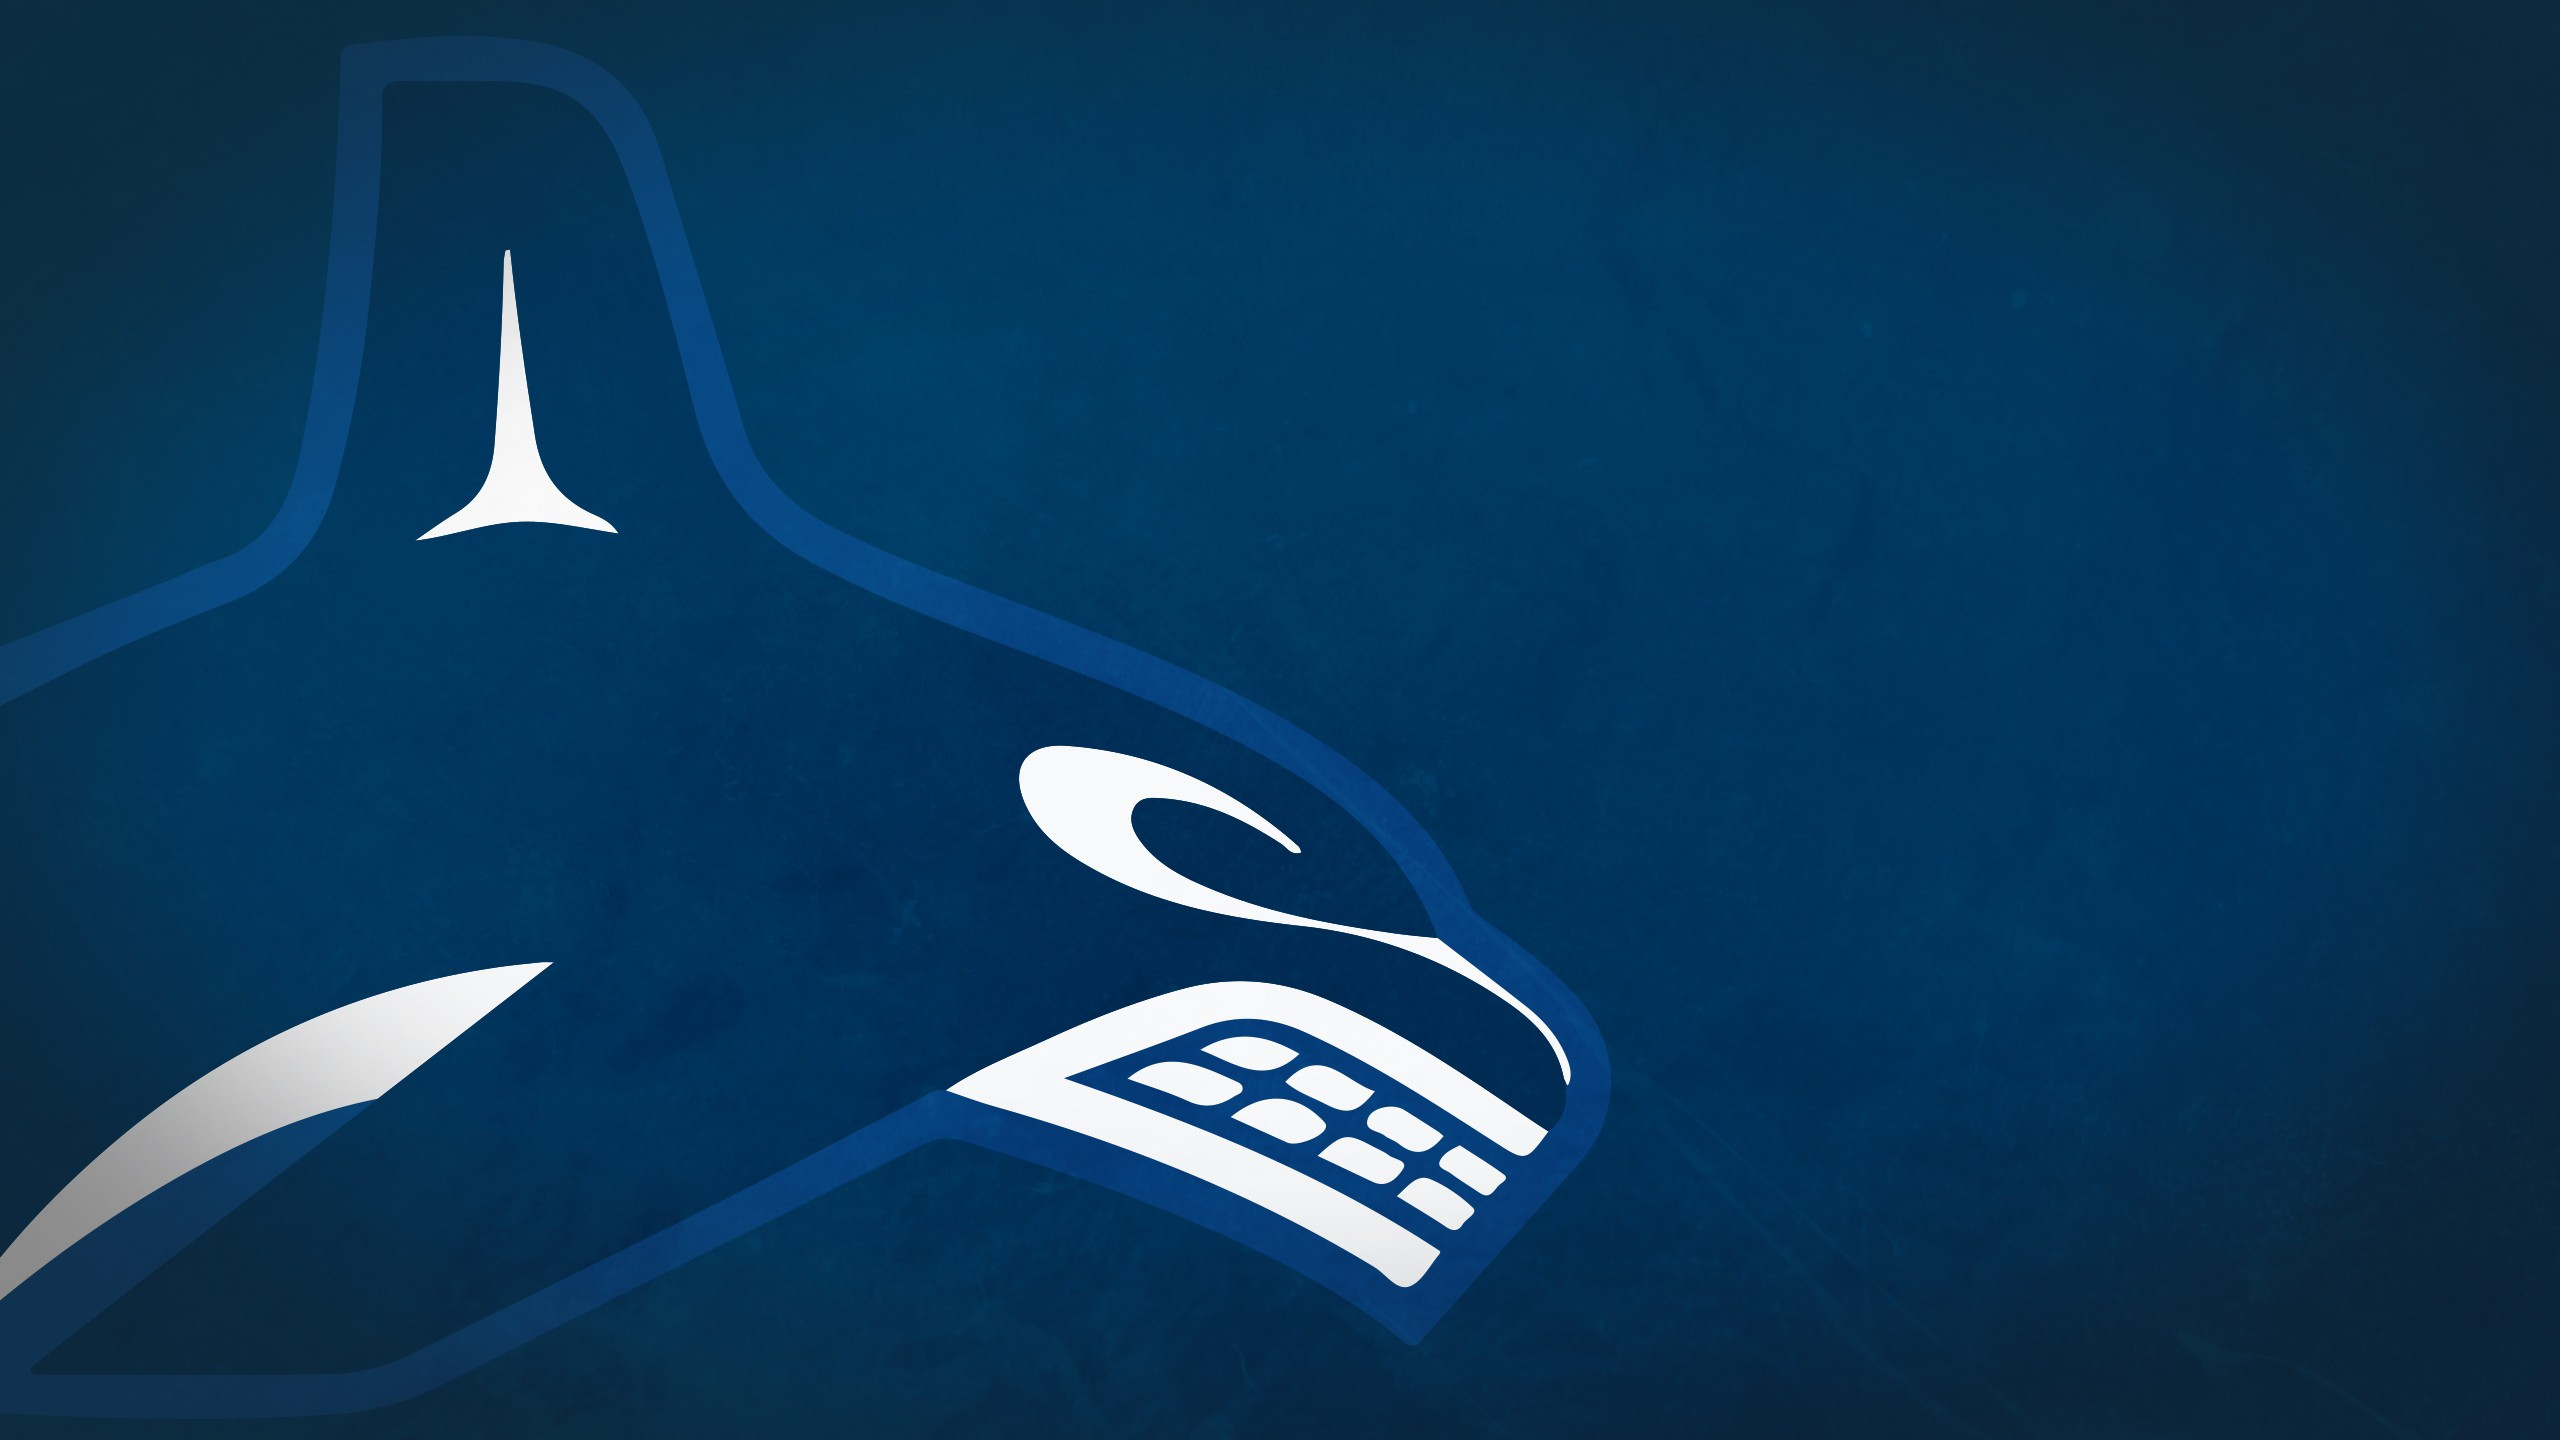 Sports   Vancouver Canucks Wallpaper 2560x1440